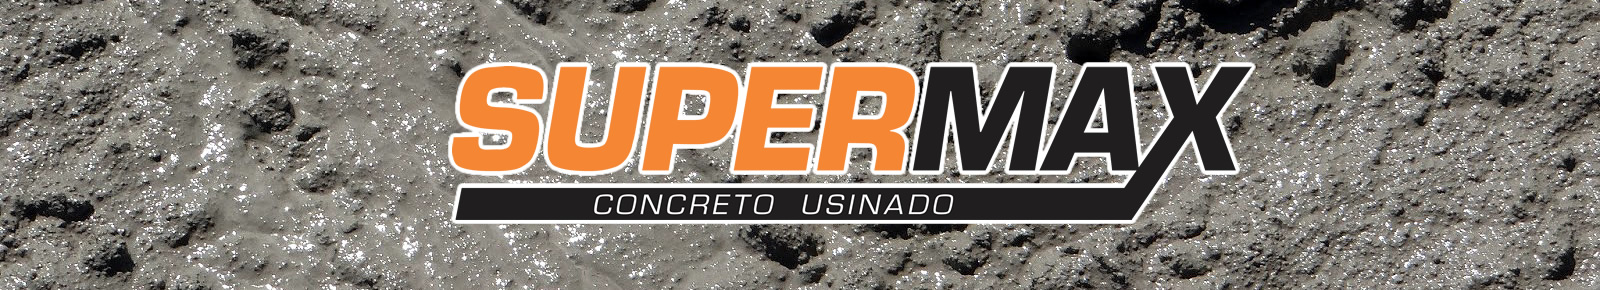 Supermax Concreto Usinado